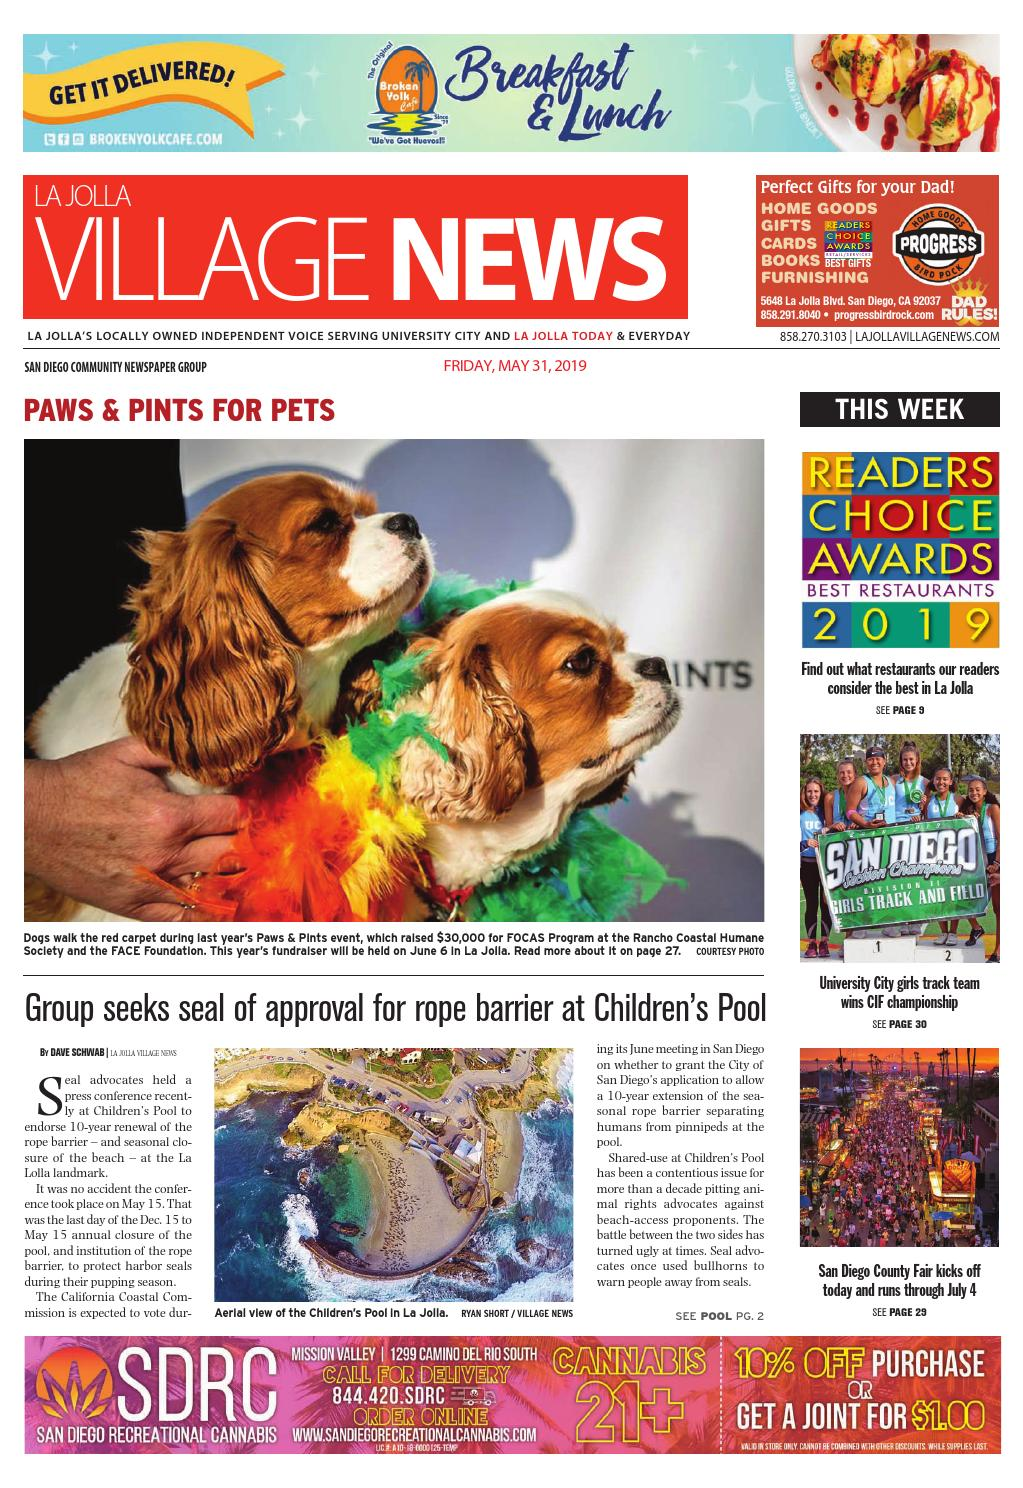 La Jolla Village News, May 31st, 2019 by San Diego Community